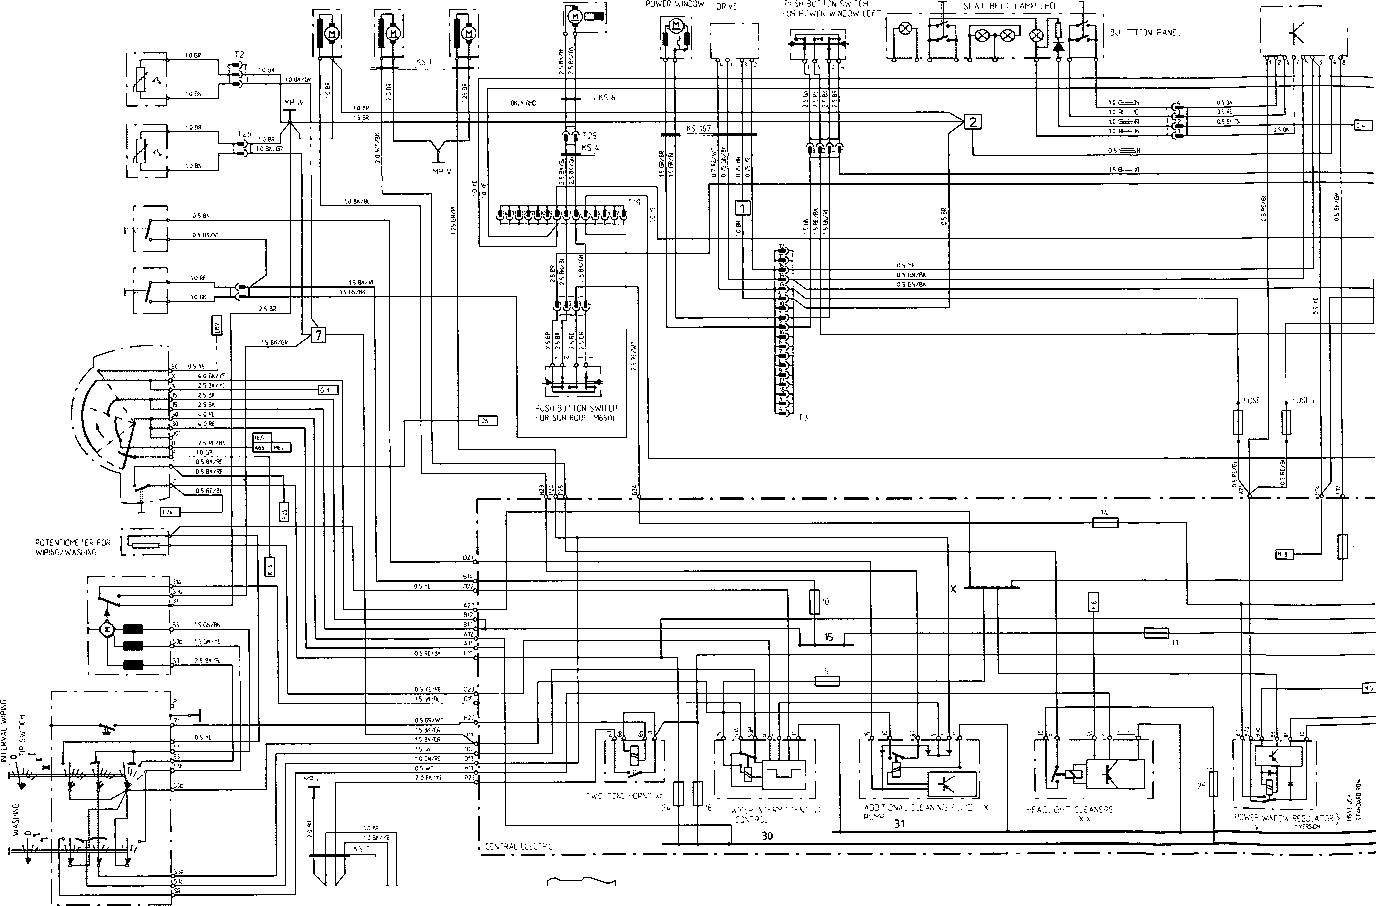 Wiring Diagram Iype 928 S Model 88 page - Flow Diagram